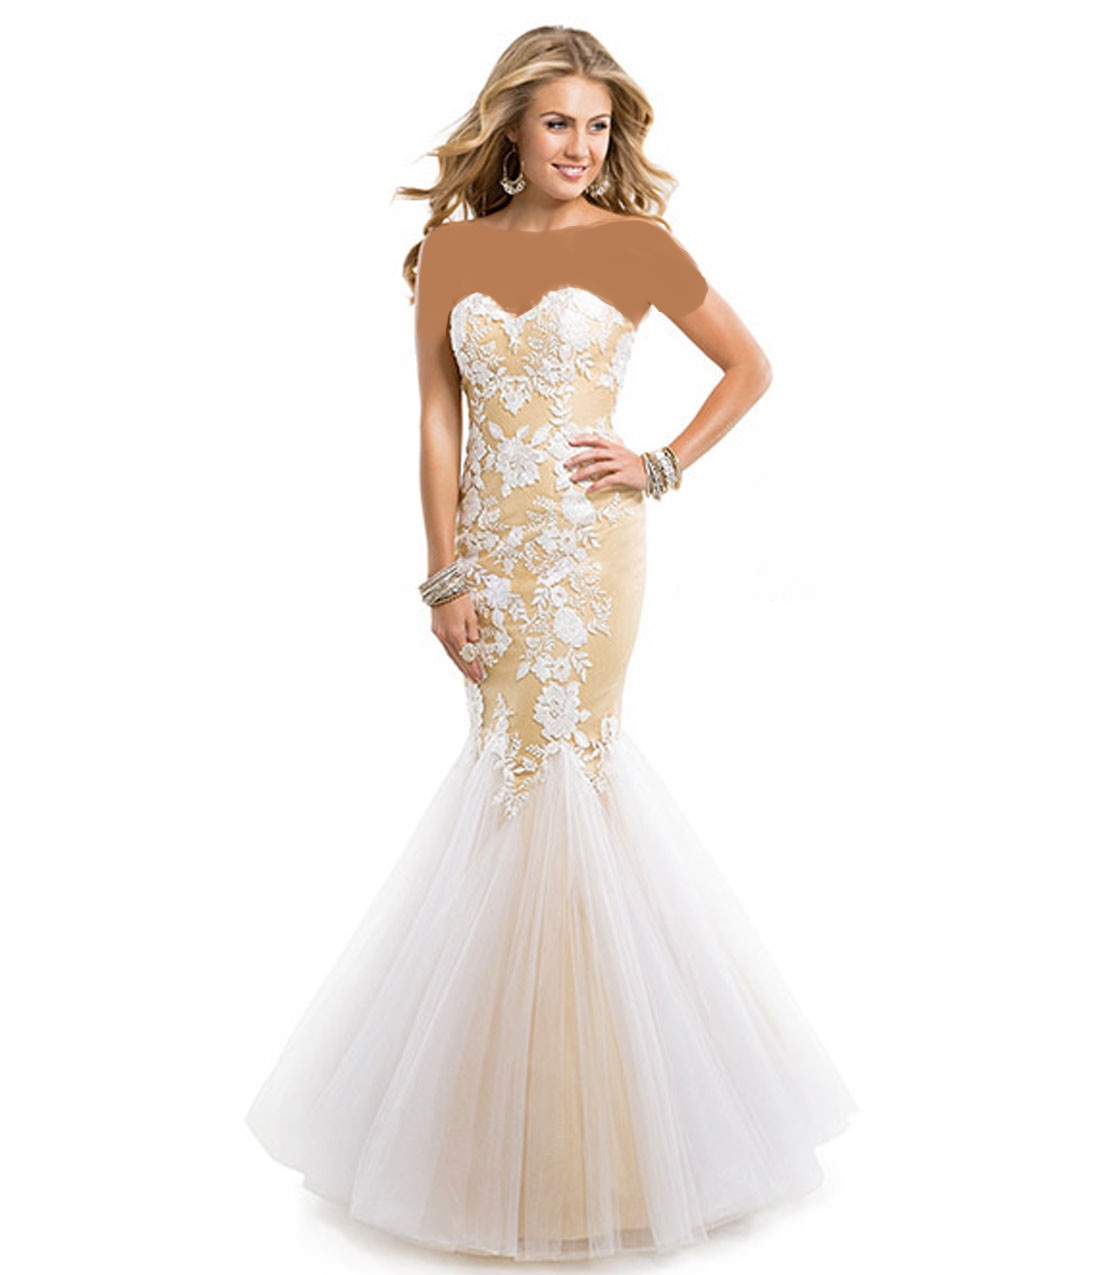 http://www.uplooder.net/img/image/80/219b10f96c1be3edbd705d75cb84a517/white-gold-lace-tulle-mermaid-gown-38713larger.jpg